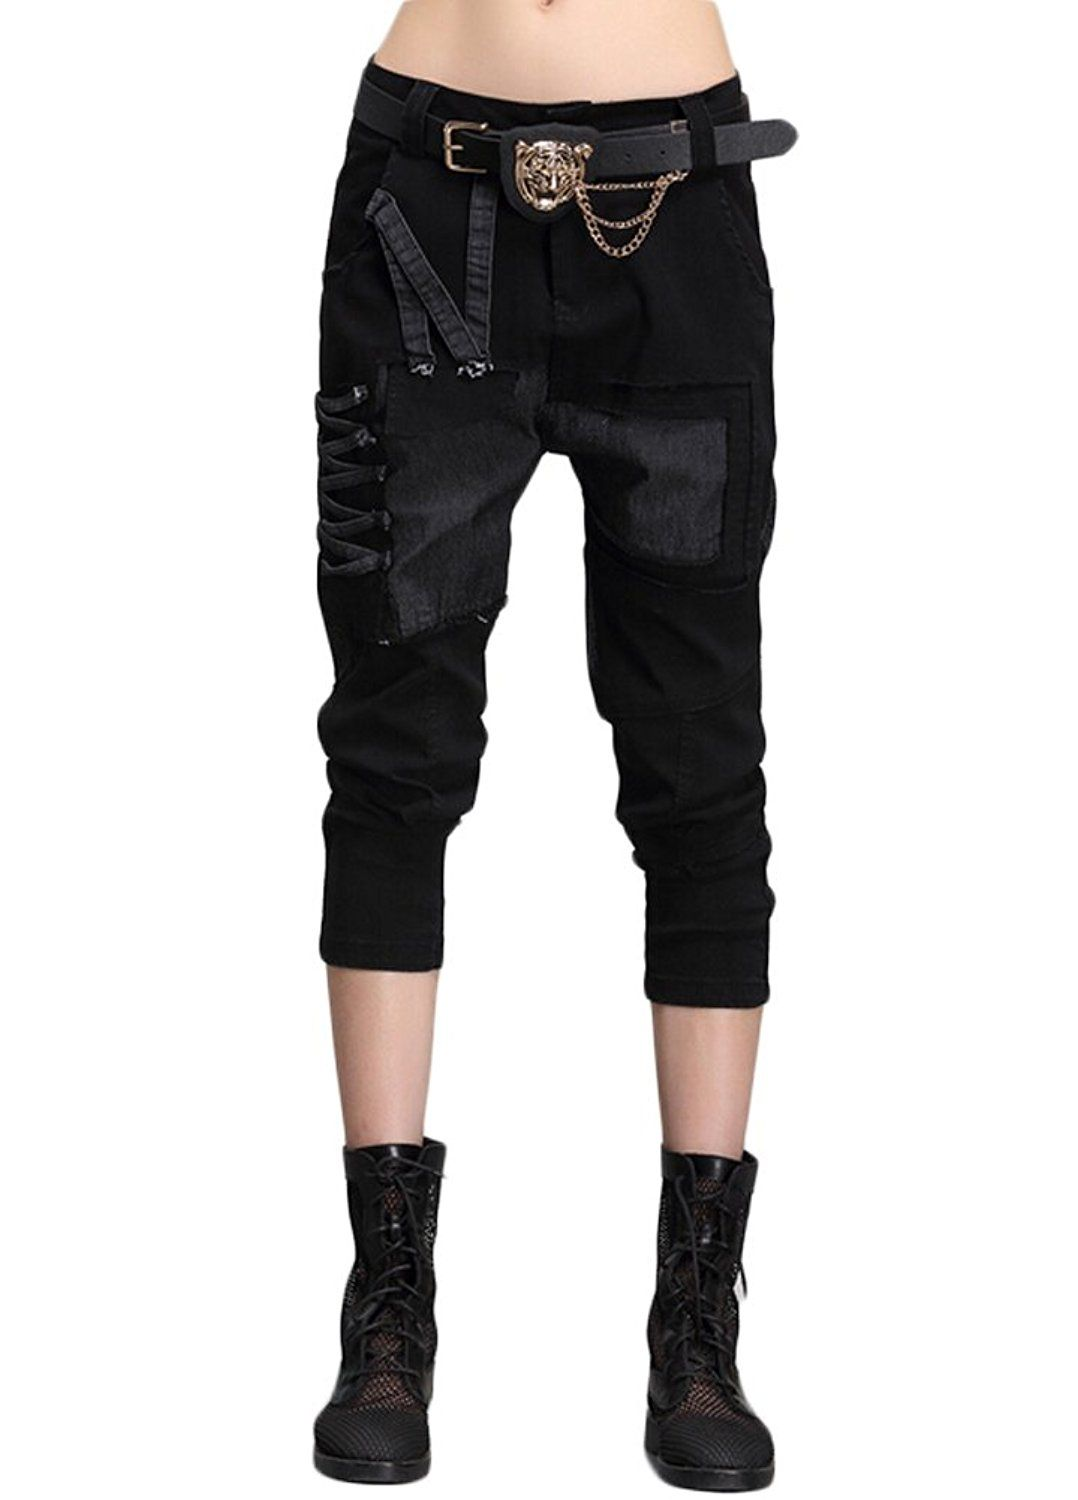 ba6d026cb40 Minibee Women s Harem Patchwork Leather Pocket Punk Style Personalized Pants  Black at Amazon Women s Clothing store